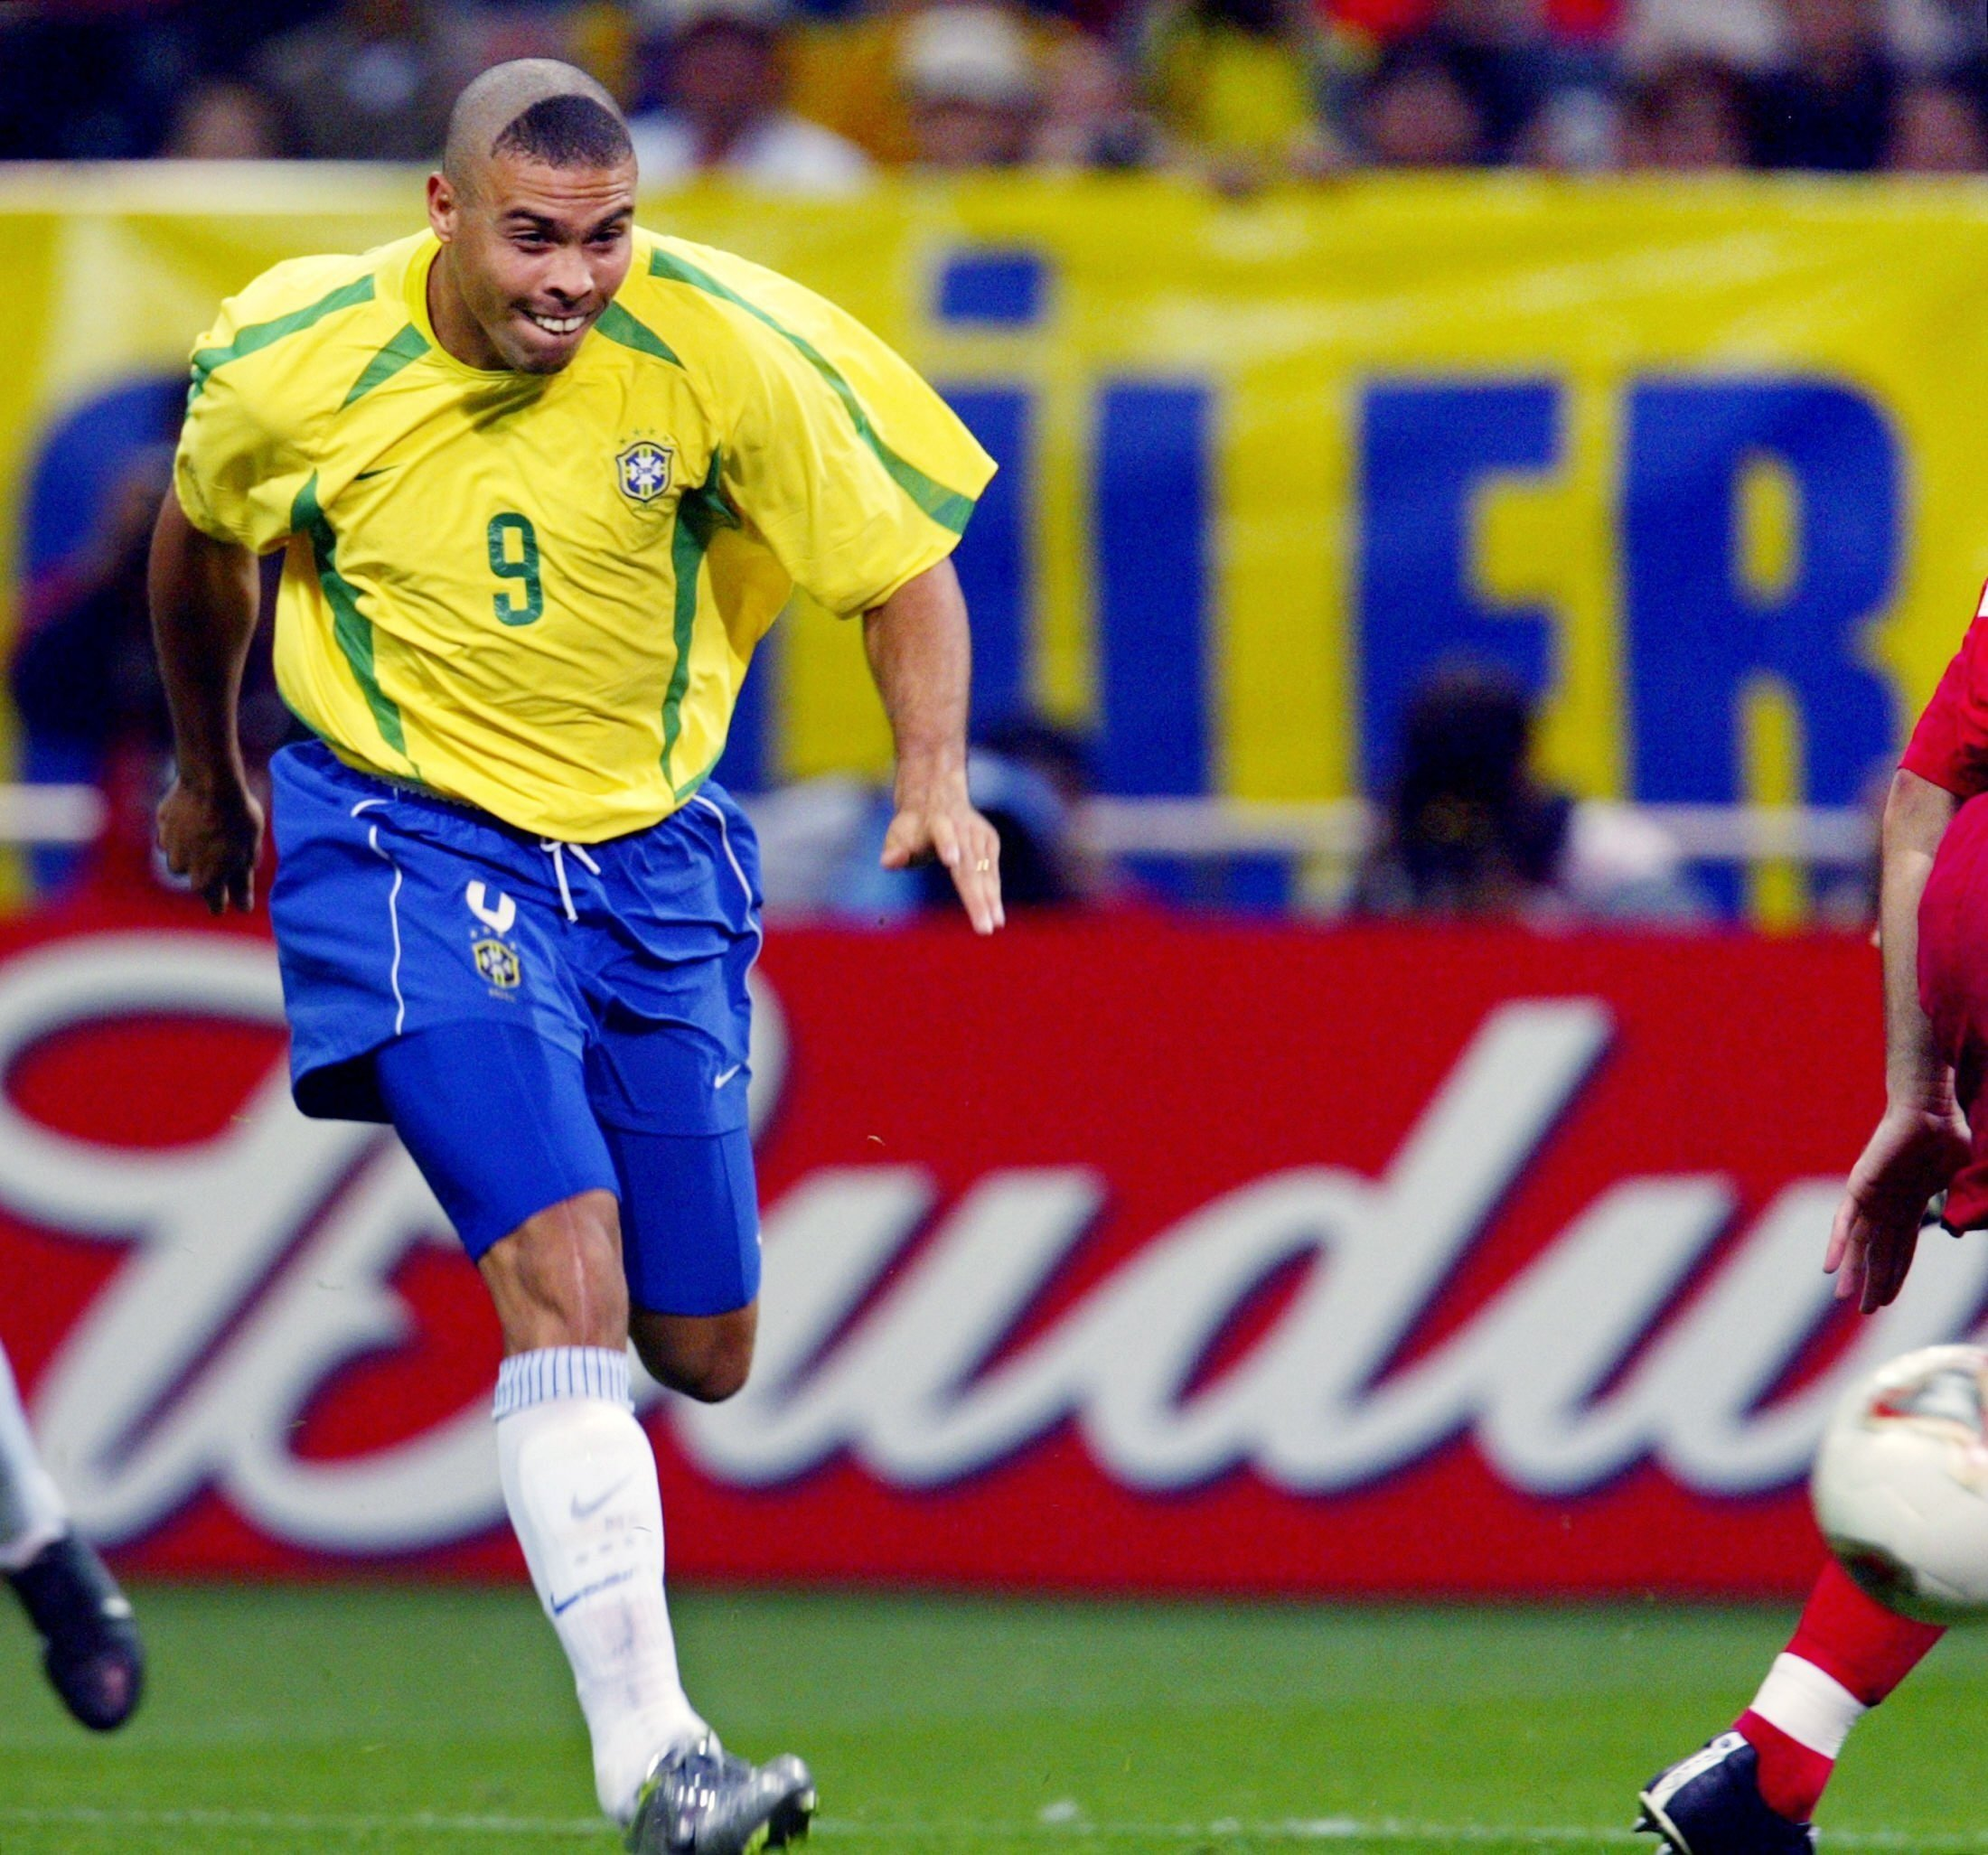 """""""He's ready. He's our greatest hope,"""" Ronaldo, a World Cup winner with Brazil in 2002, tells CNN Sport. """"We hope that he can be our top scorer and can bring the World Cup to Brazil."""